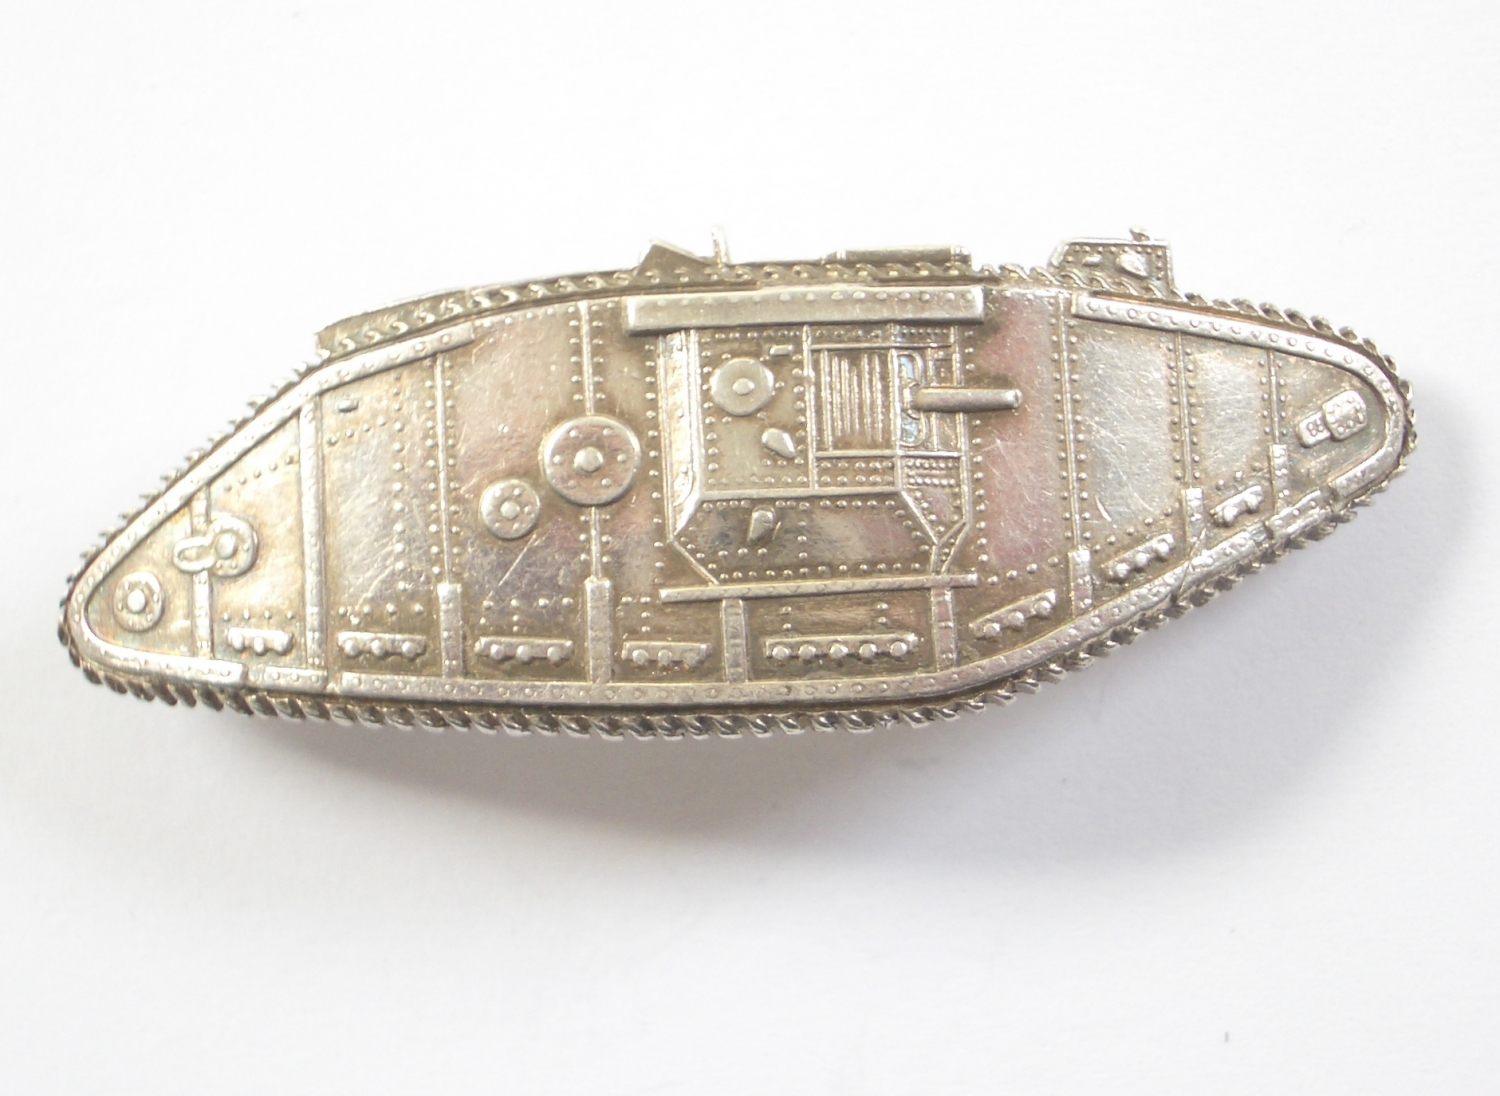 Tank Corps Officer's 1917 silver arm badge